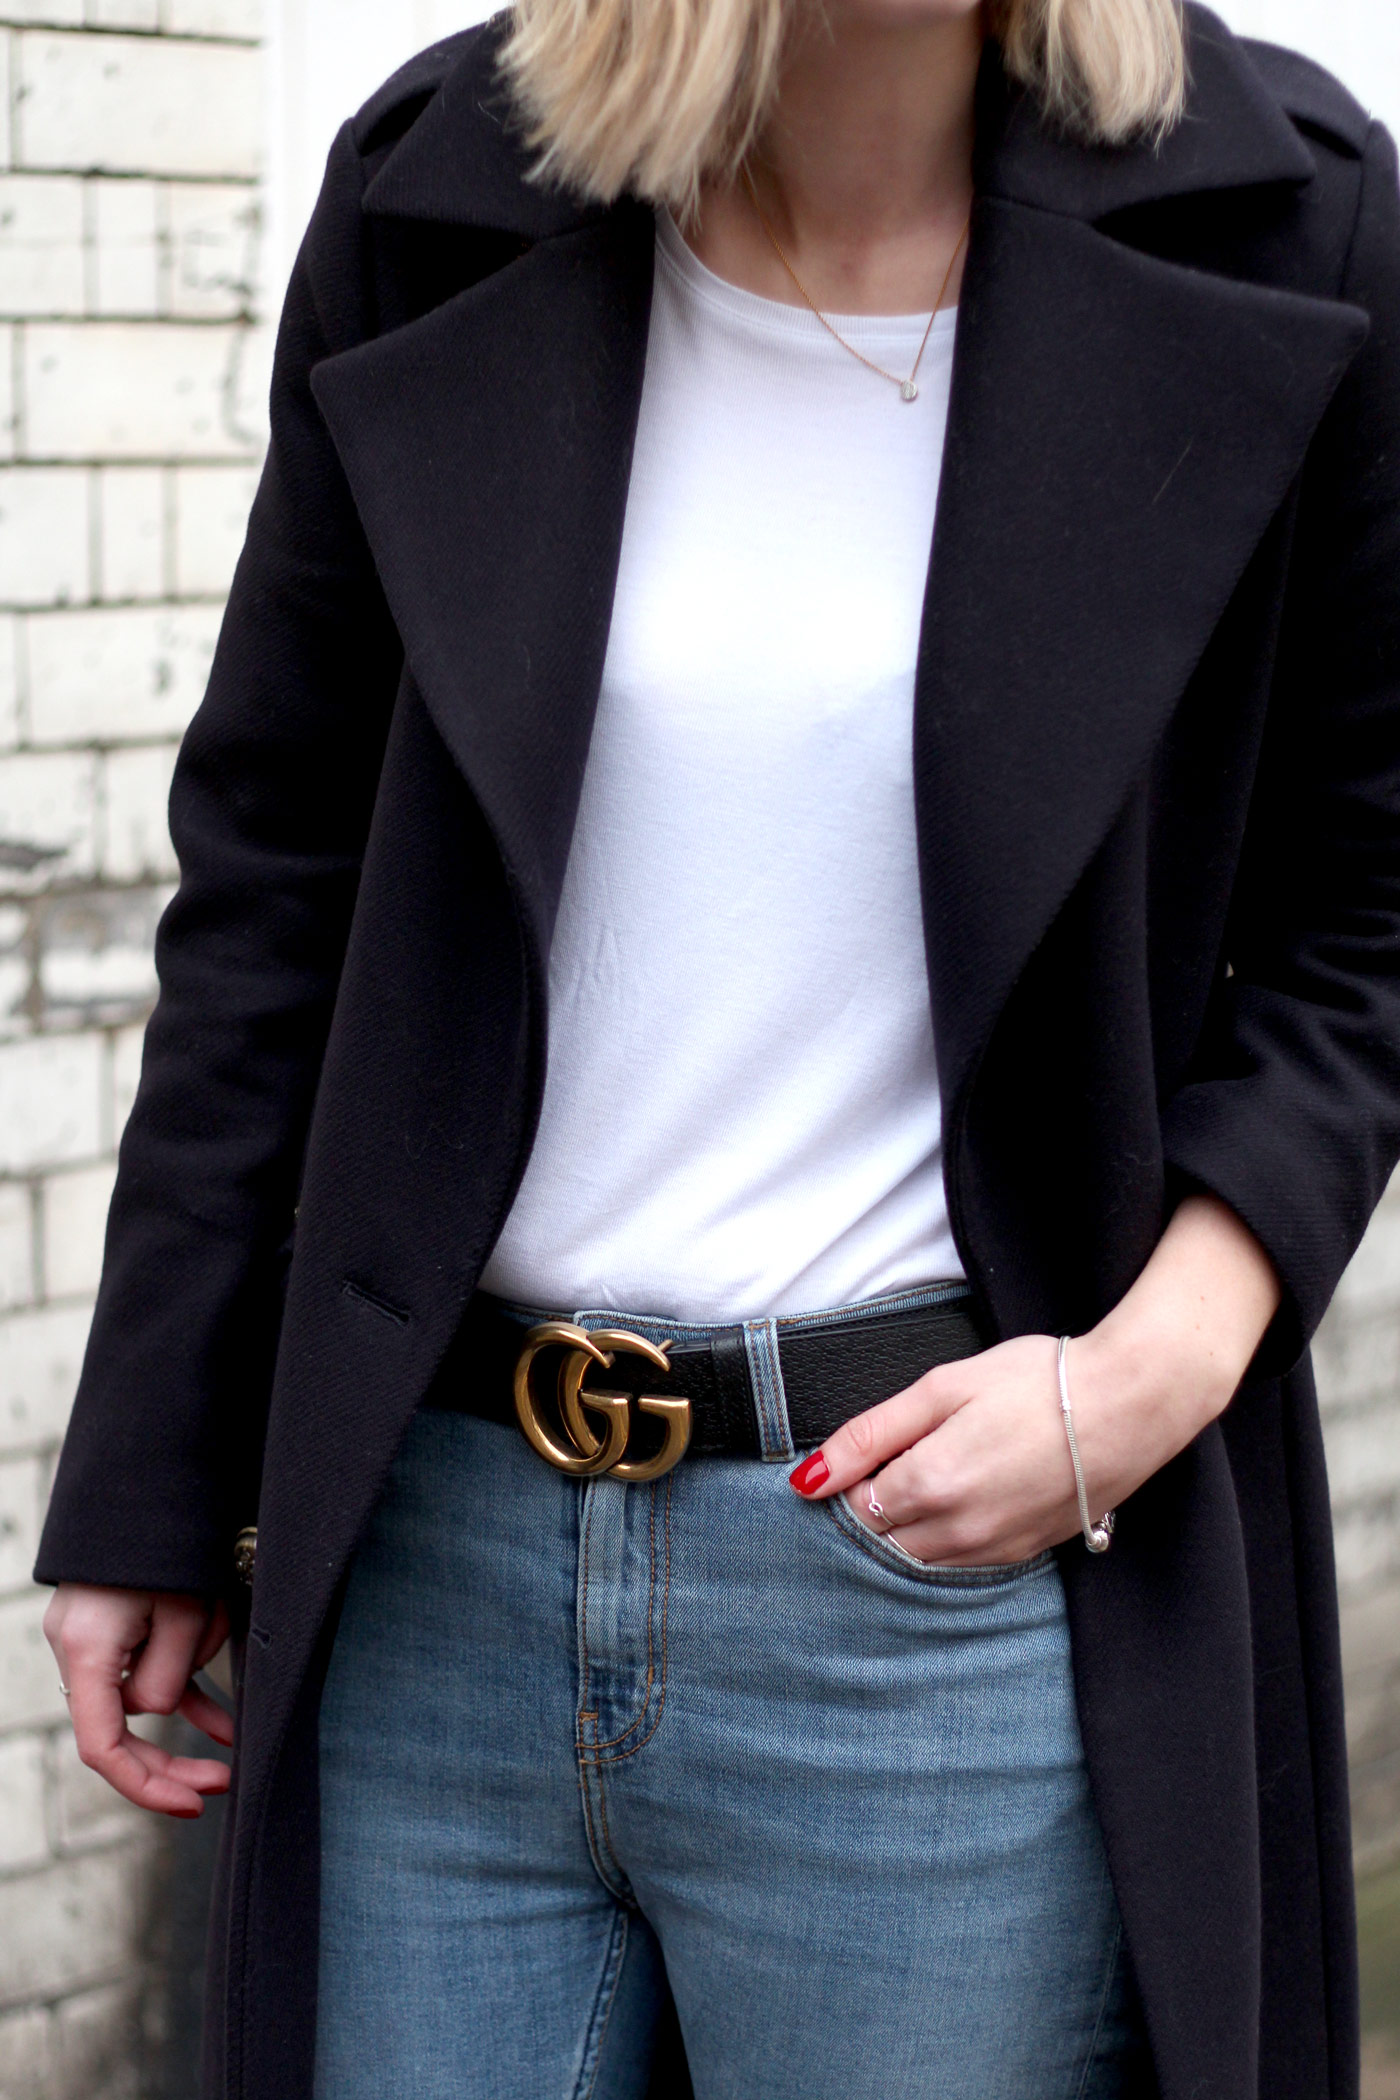 gucci-double-G-belt-black-gold-acne-pistol-boots-chloe-drew-grey-11